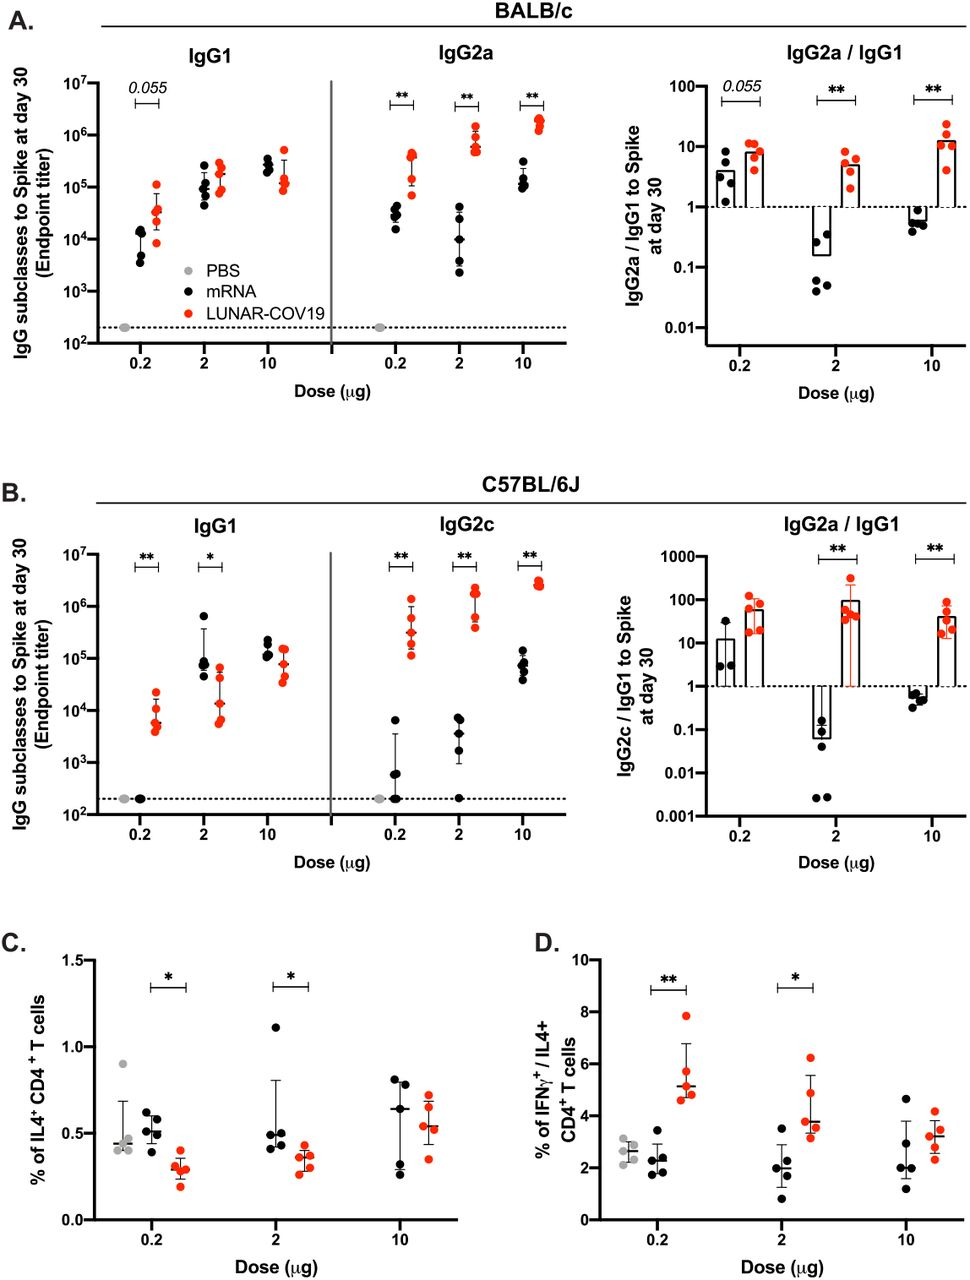 LUNAR-COV19 elicits Th1 biased immune responses. SARS-CoV-2 spike-specific IgG subclasses and the ratio of IgG2a/c/IgG1 at 30 days post-vaccination with LUNAR-COV19 and conventional mRNA in A ) BALB/c and B ) C57BL/6J mice. Th2 cytokine and Th1/Th2 skew in CD4 T cells at day 7 post-vaccination in C57BL/6J mice measured by ICS as C ) percentage of IL4+ CD4 T cells and D ) ratio of IFNγ + /IL4 + CD4 + T cells. Antibody titers and T cell data were compared between groups using a two-tailed Mann-Whitney U test with * denoting 0.05